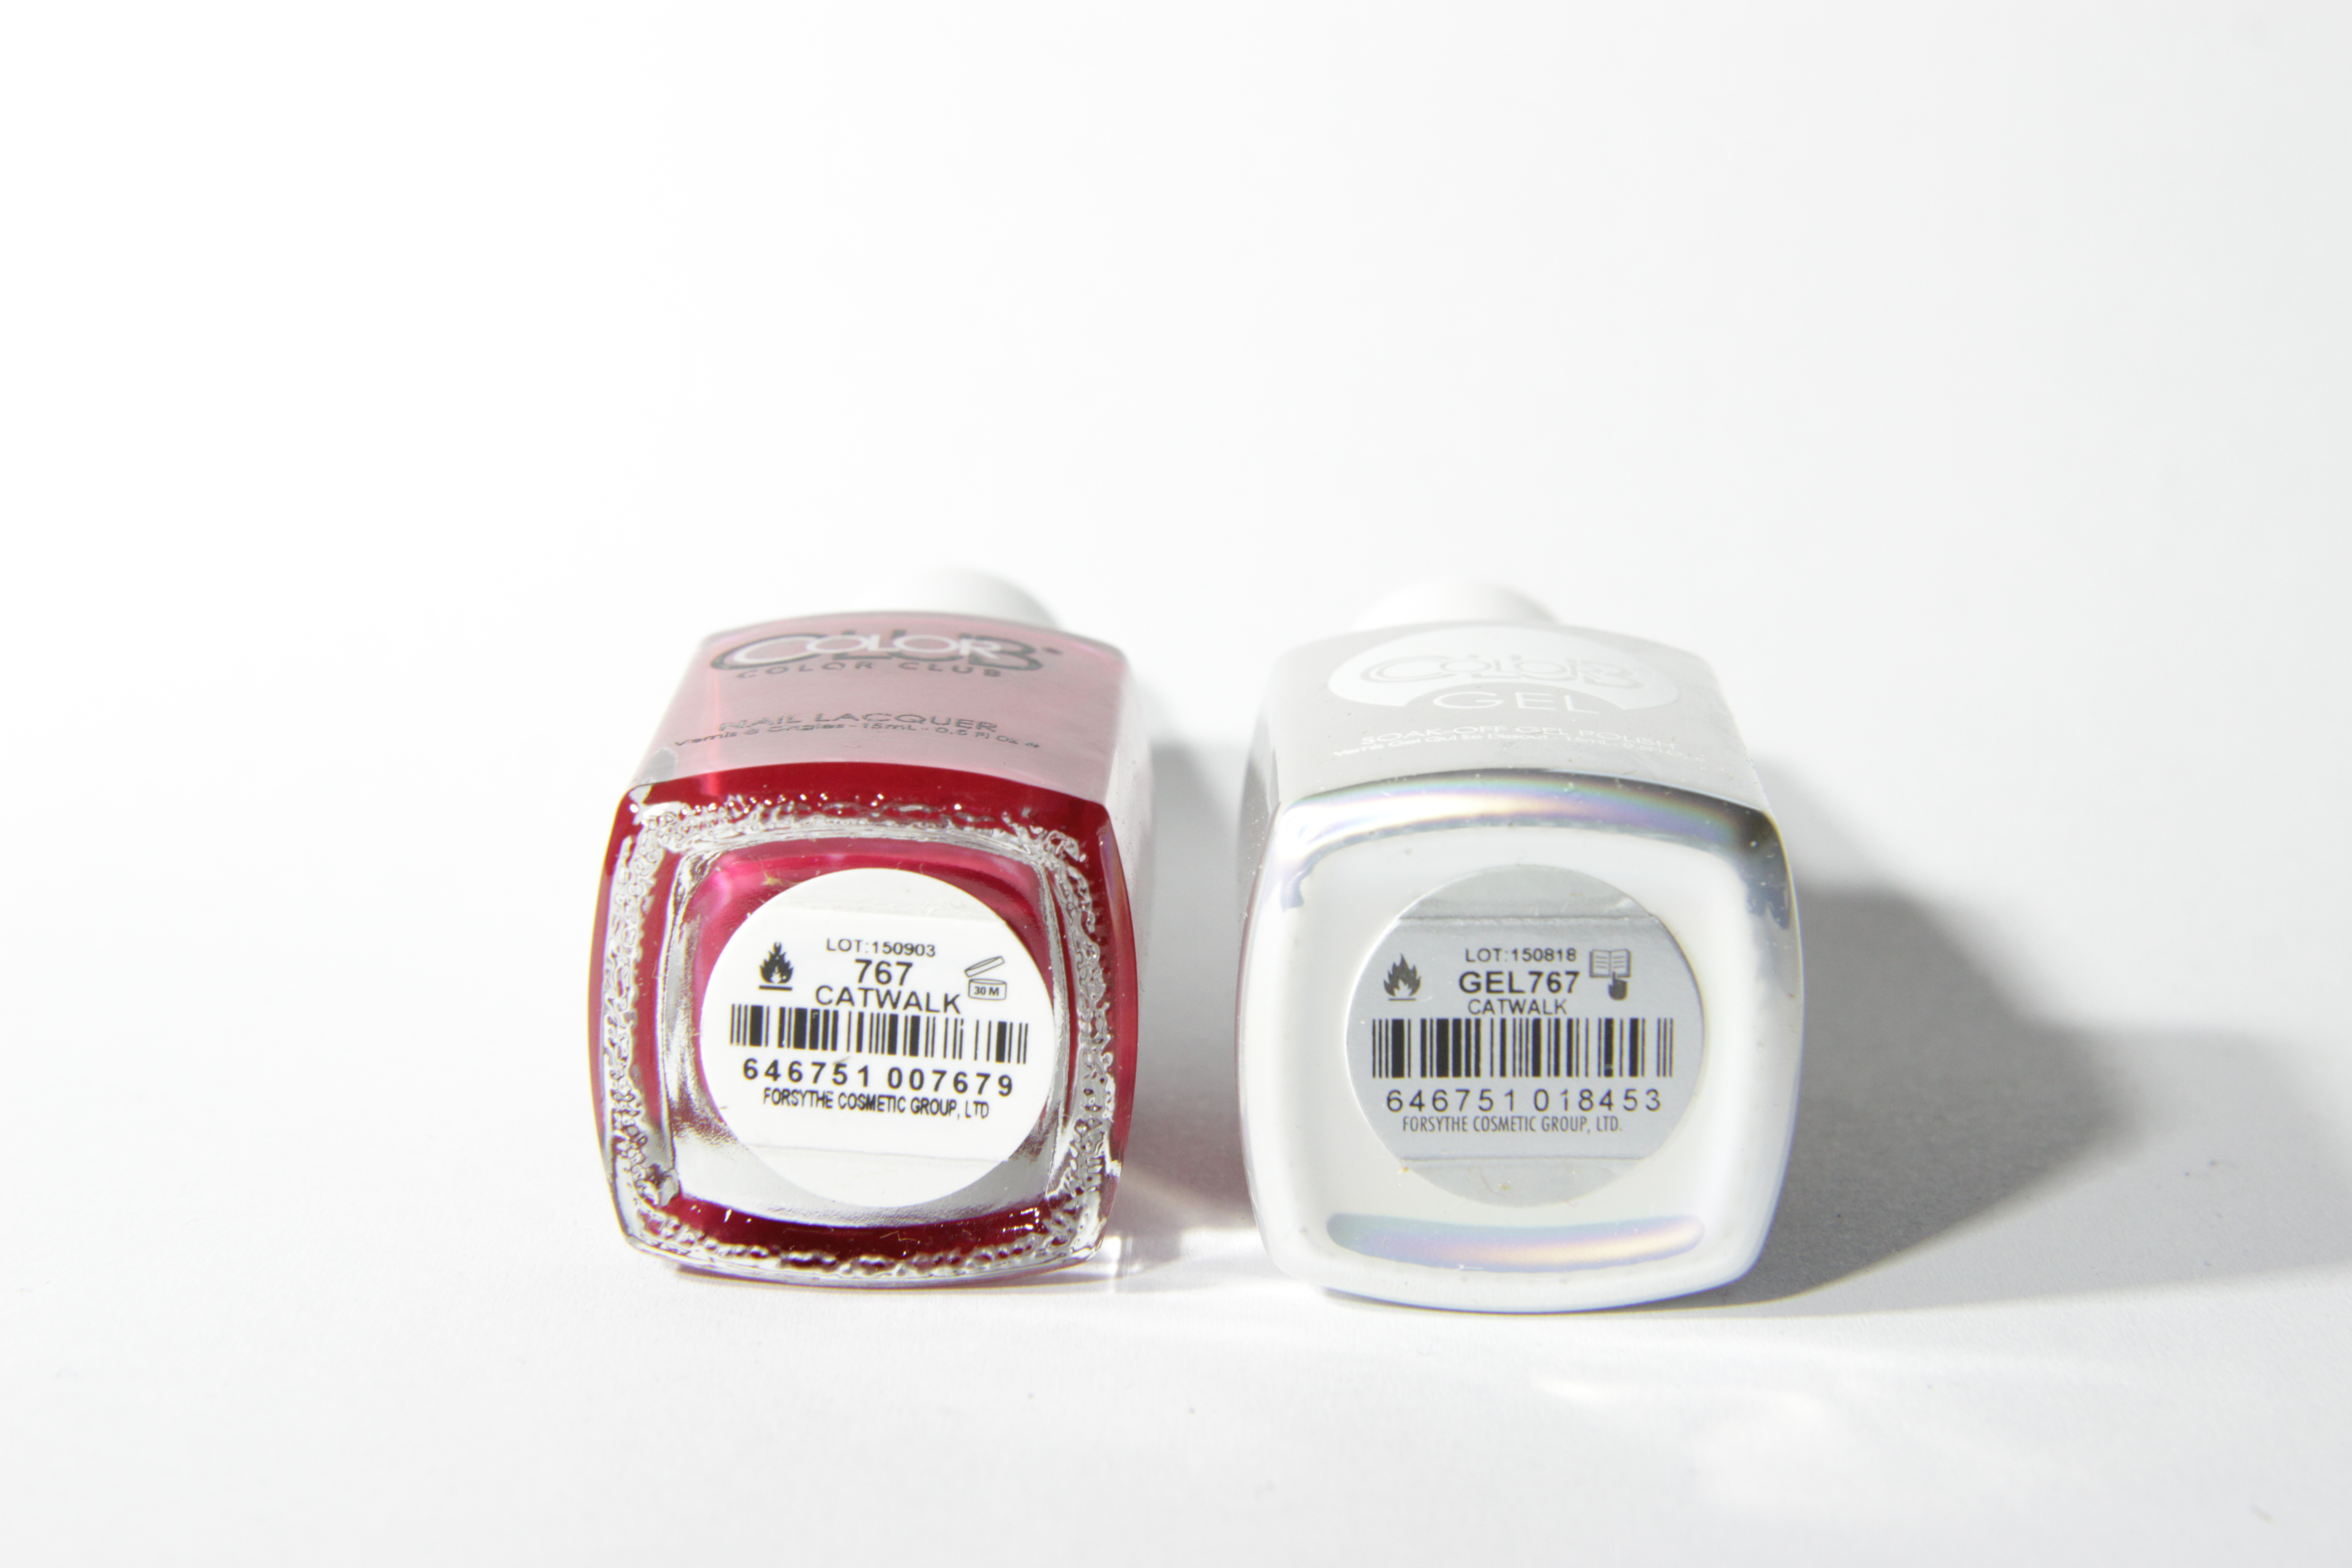 #0767 CATWALK Color Club Duo Nagellack Nail Lacquer and Soak-Off Gel Polish rot red